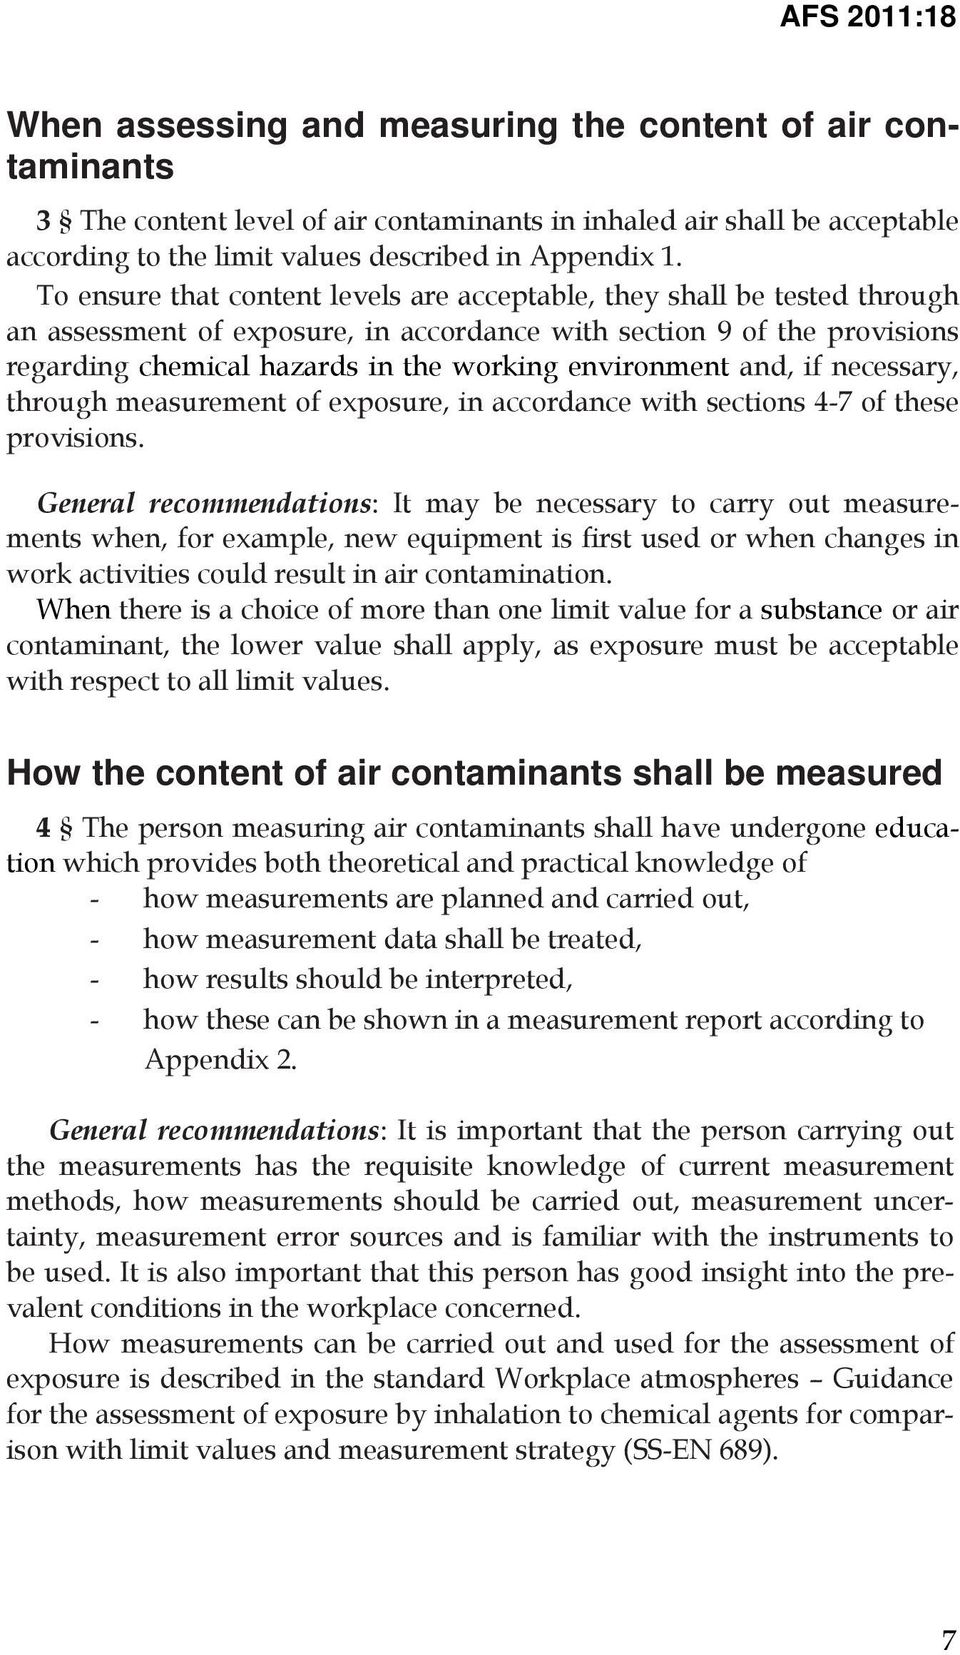 environment and, if necessary, through measurement of exposure, in accordance with sections 4-7 of these provisions.